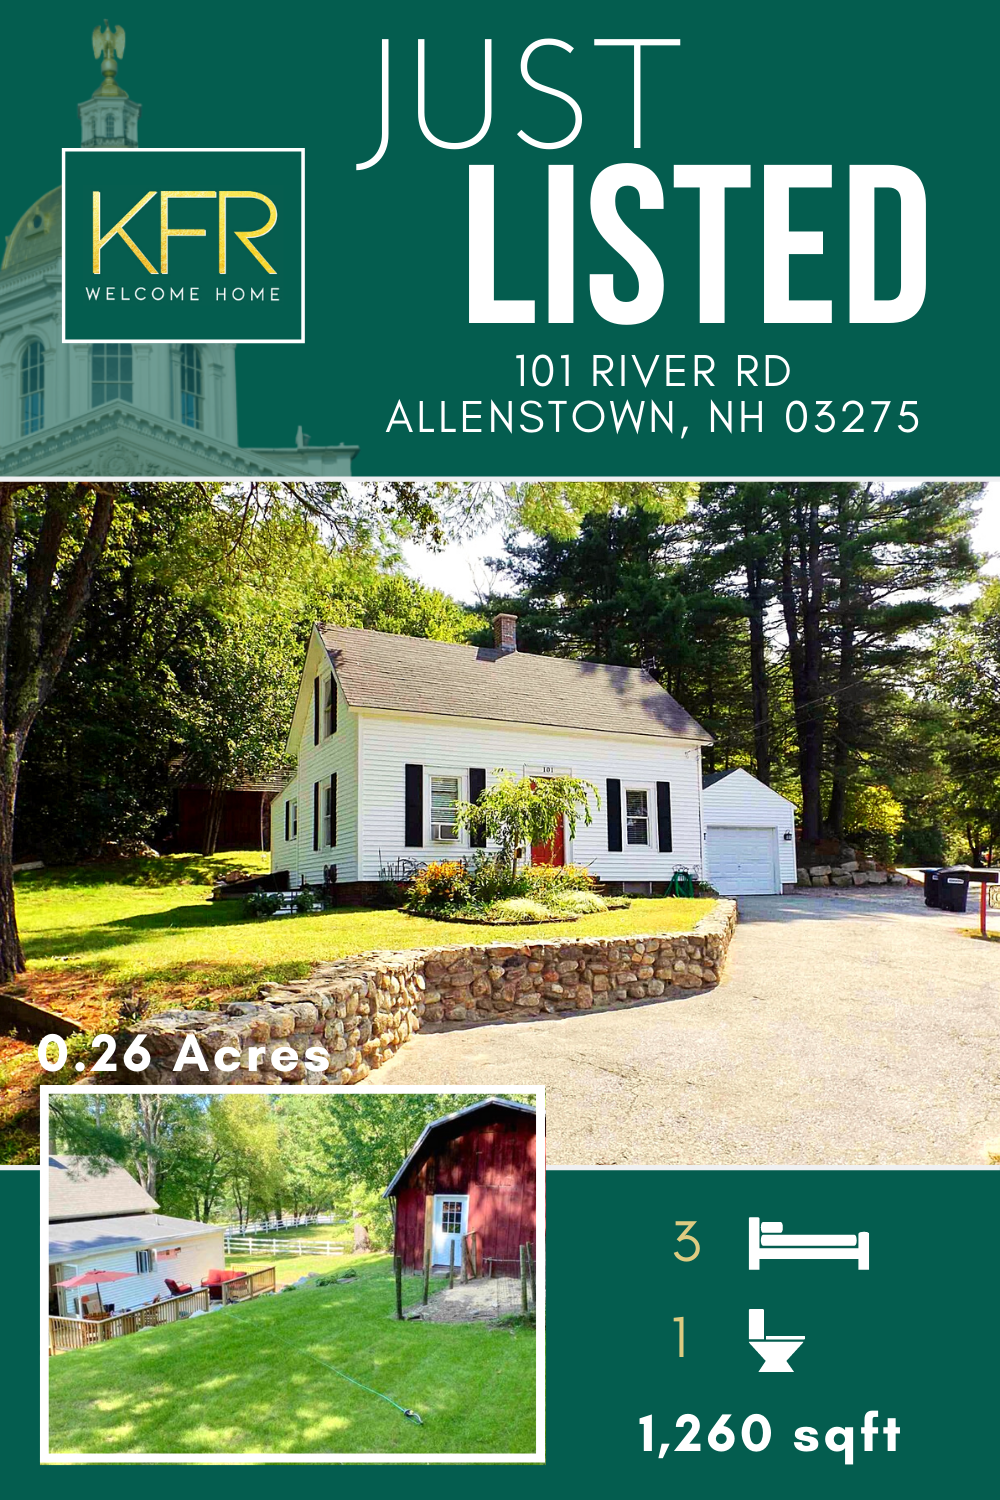 This charming cape has so many amazing features, there's too many to list! Head to our website to see more information about this home! #newhampshire #realestate #home #capehouse #capehome #justlisted #realtors